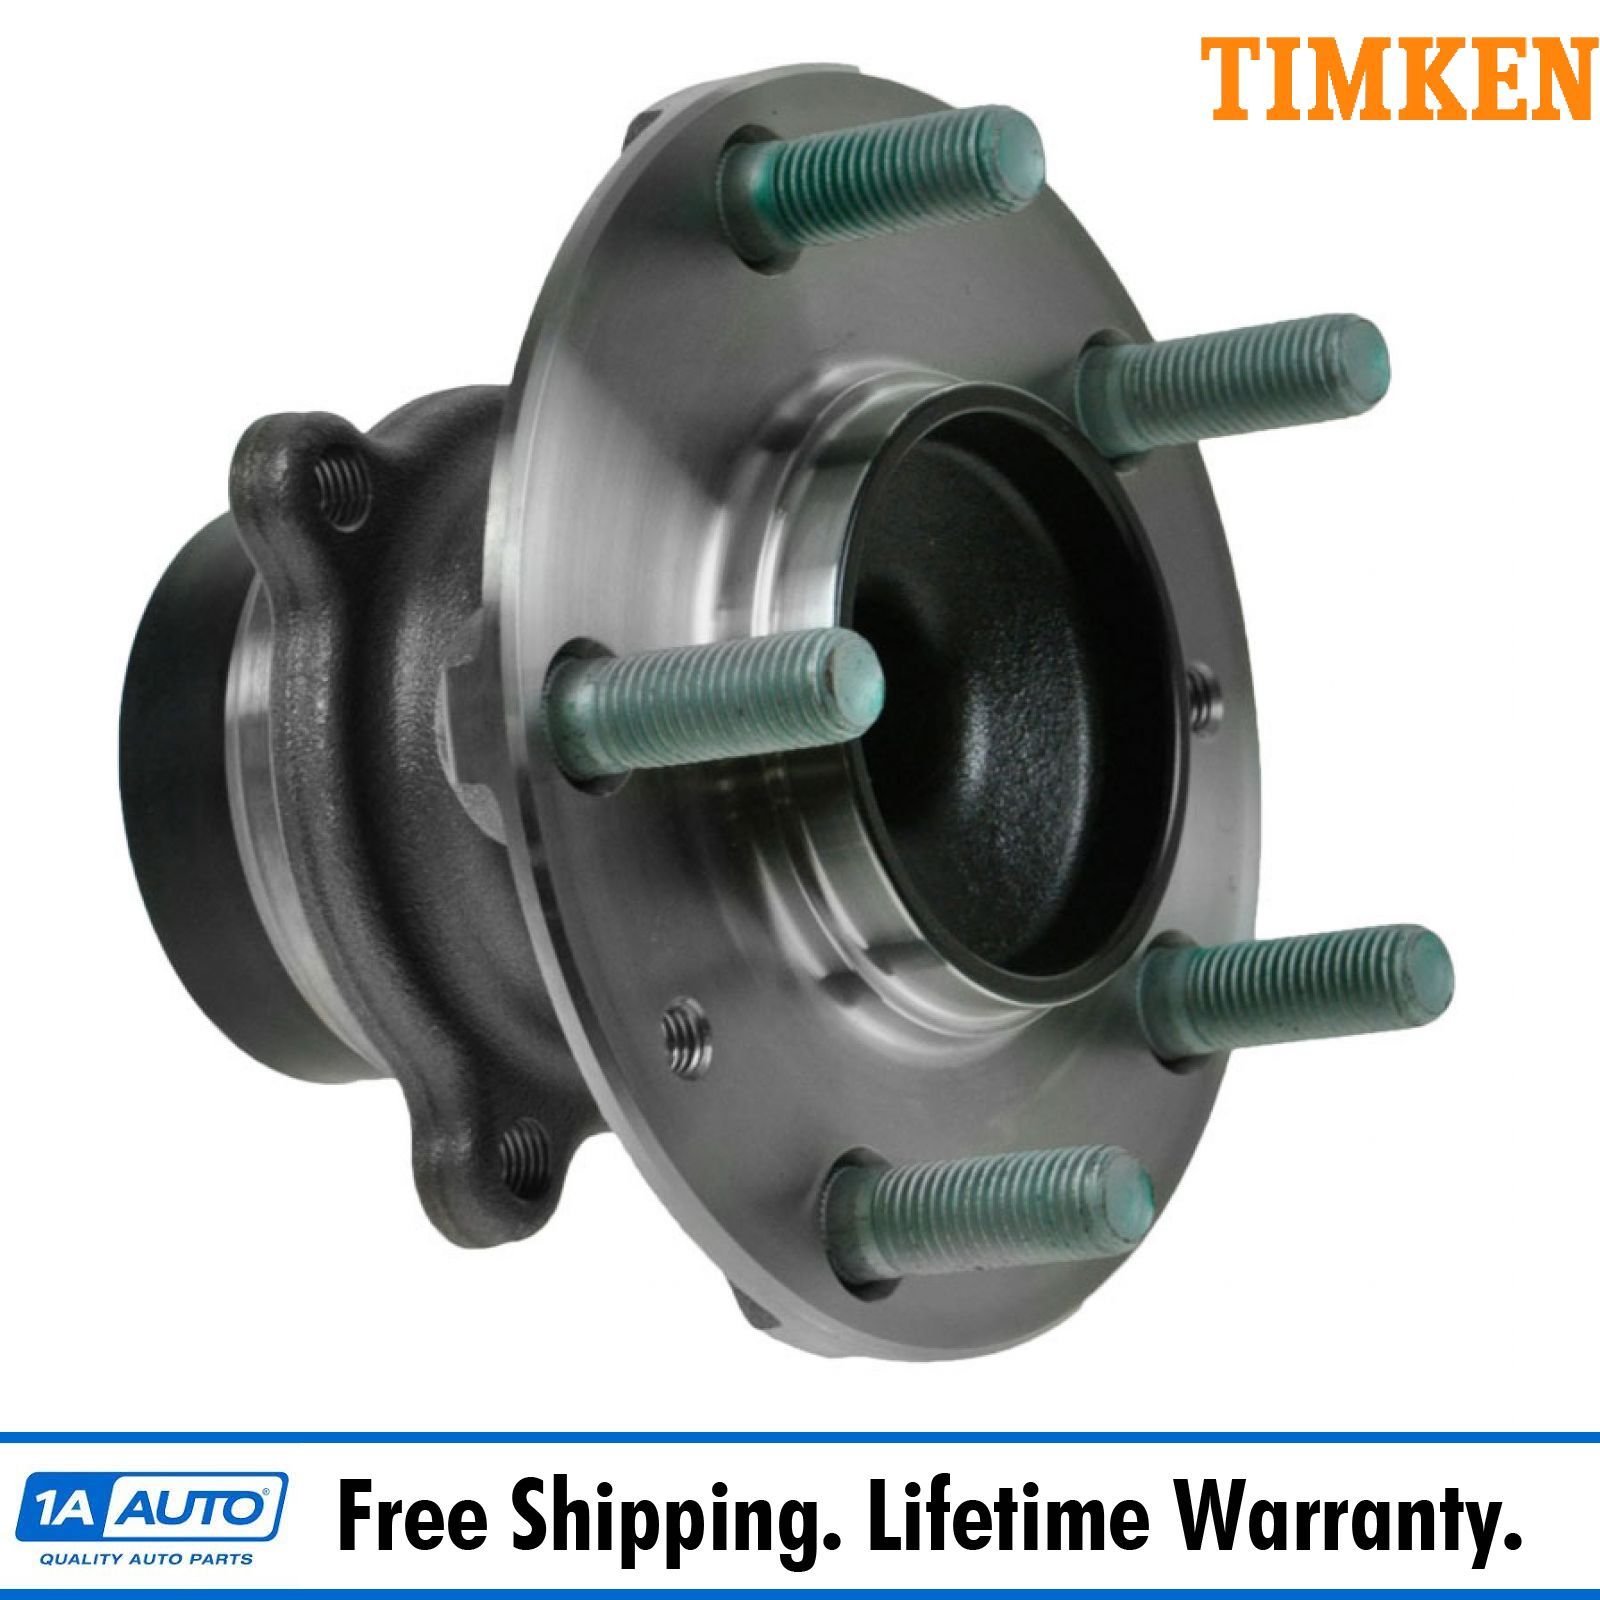 hight resolution of details about timken ha590360 front wheel hub bearing for 09 11 mazda rx 8 rx8 w dsc 5 lug